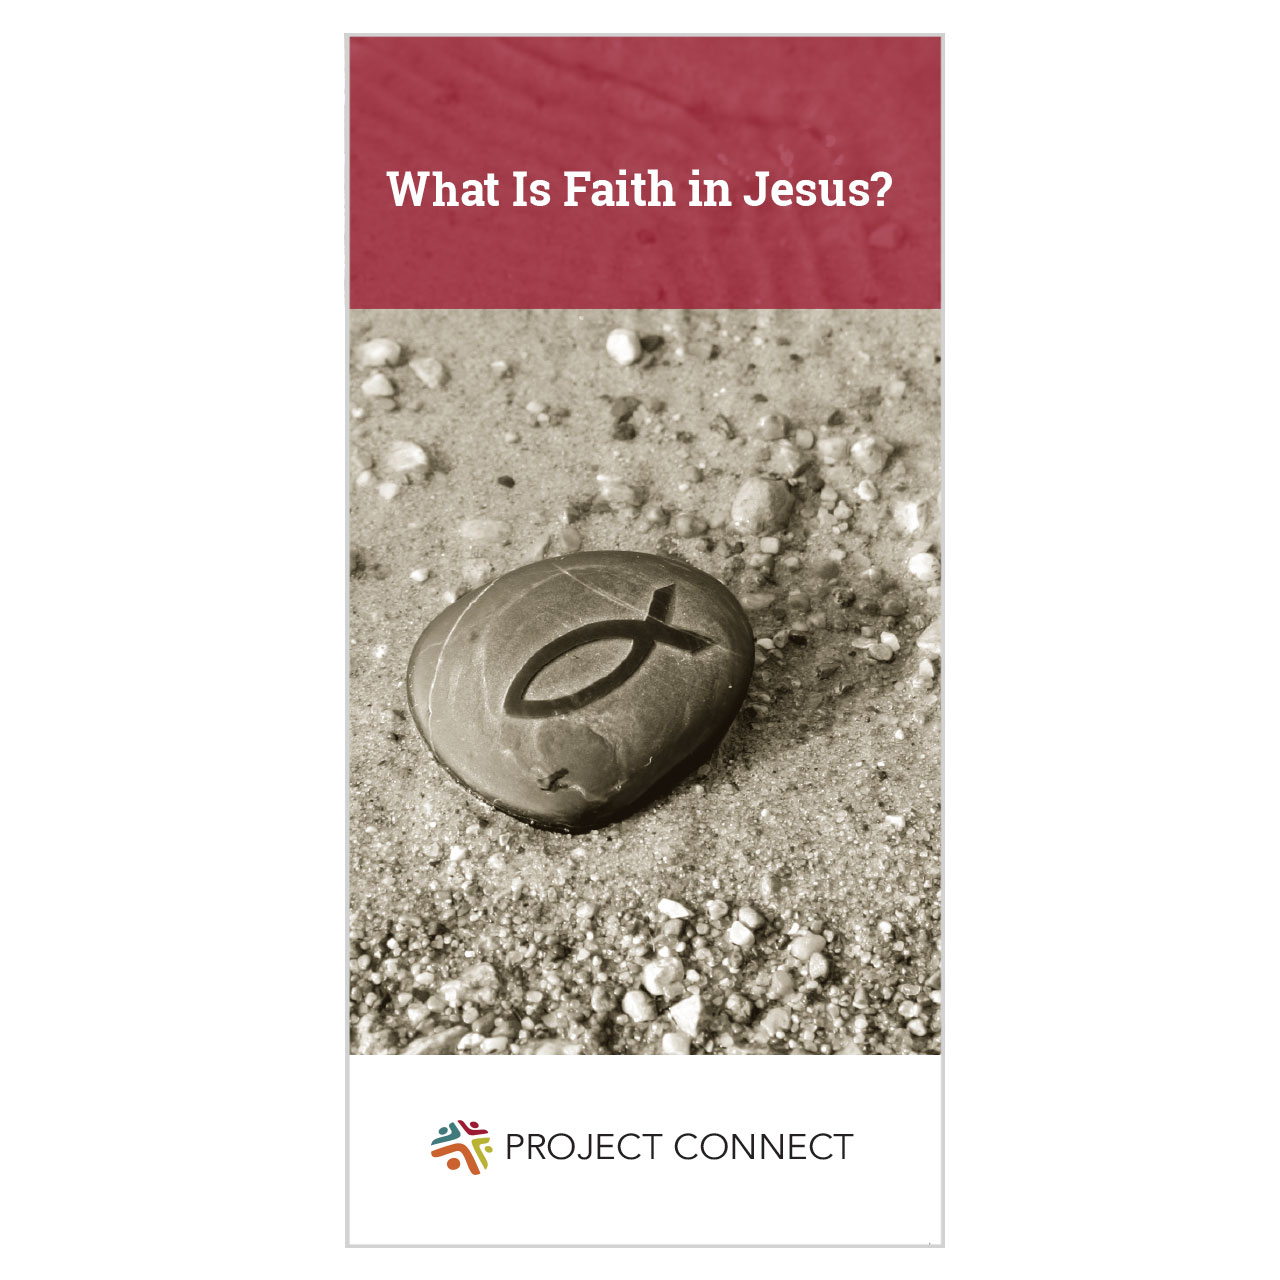 What is Faith in Jesus?